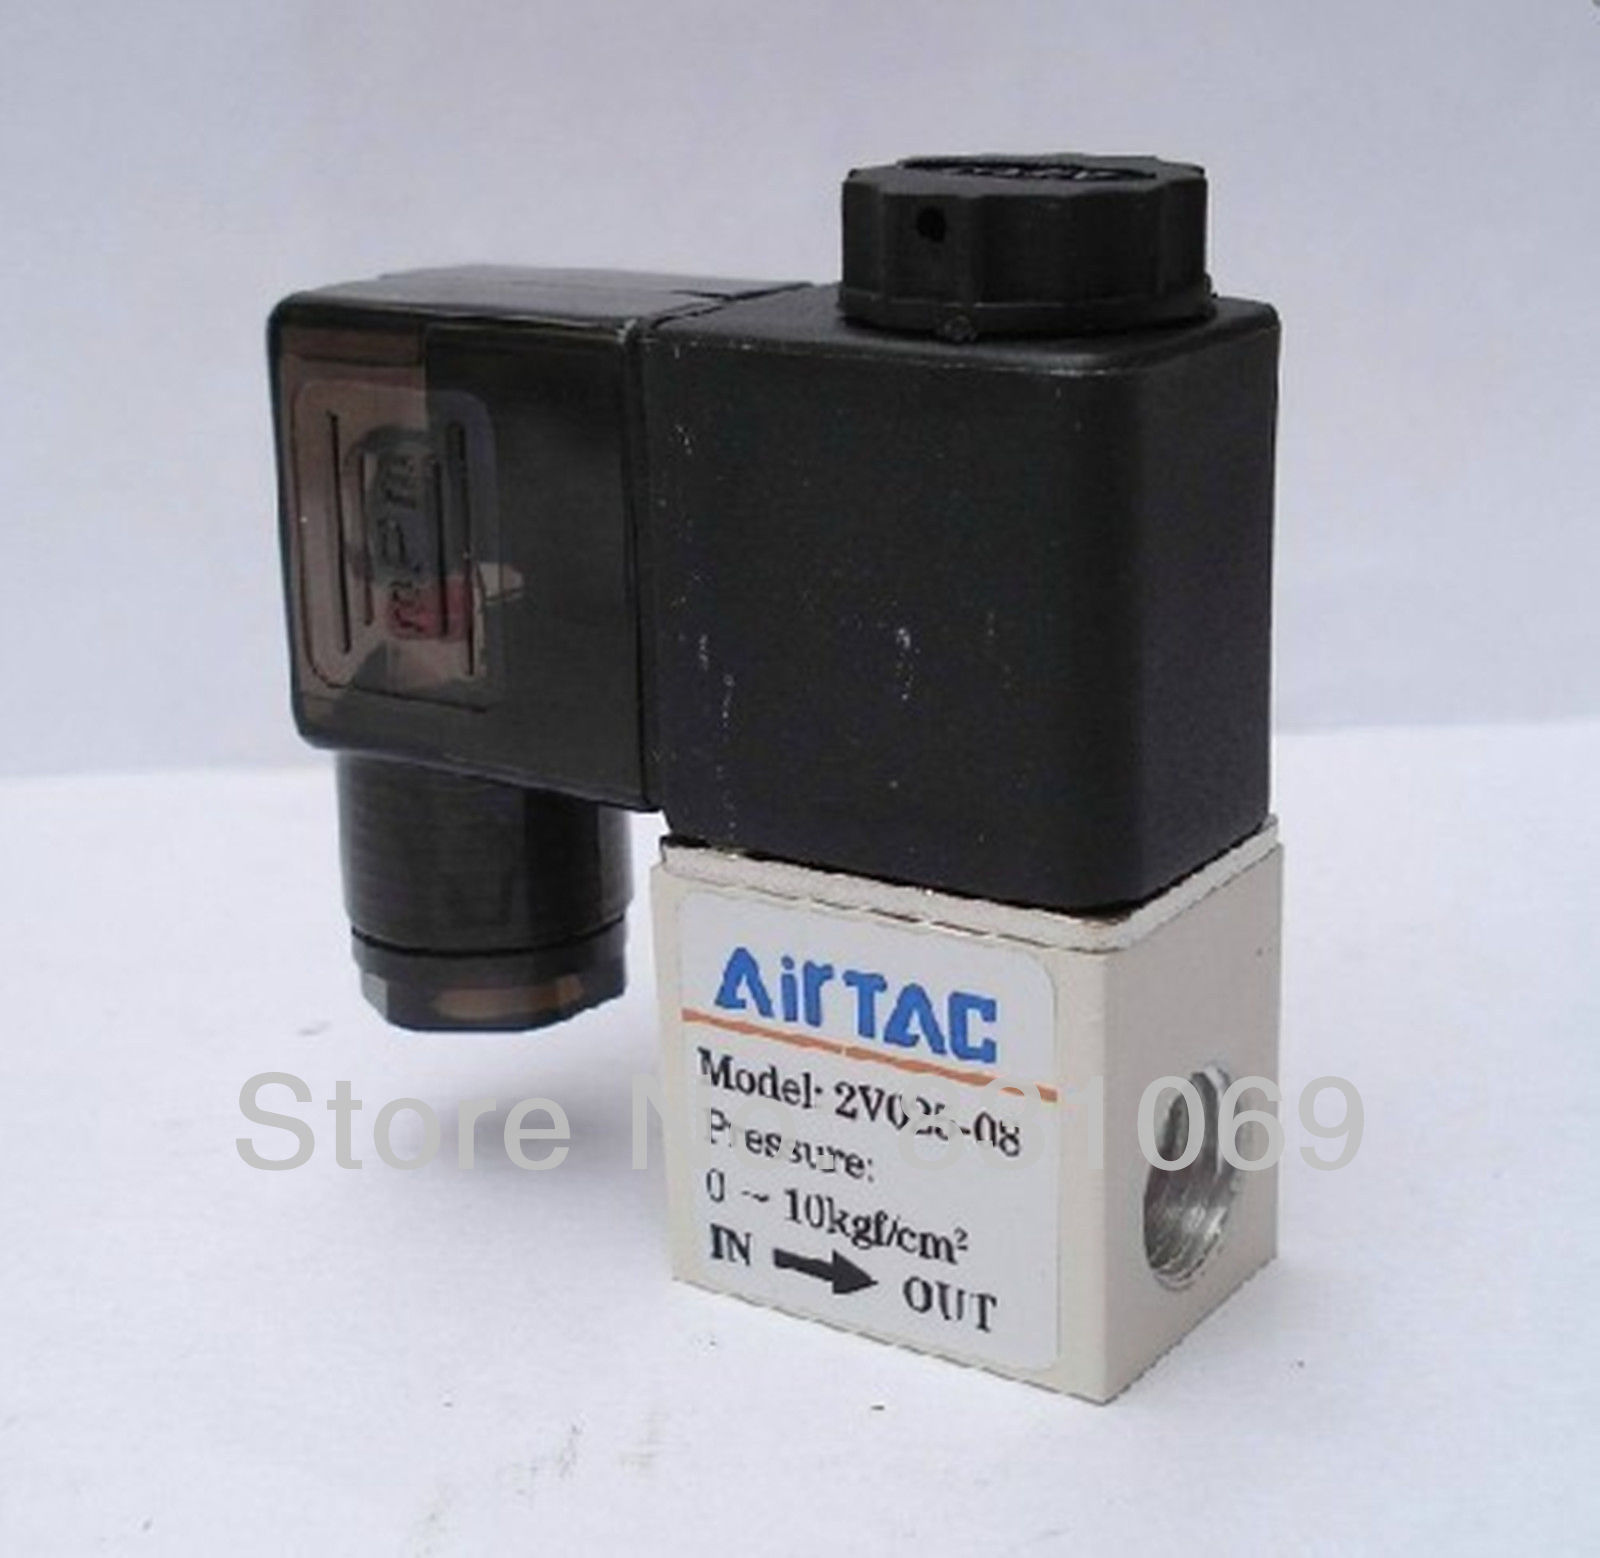 1pcs 2V025-08 DC 12V PT1/4 Solenoid Valve 2 Position 2 Way Normally Closed IP65 Brand New free shipping normally closed solenoid valve 2v025 08 220vac 1 4 high qulity for water air gas 2v sereis two way valve